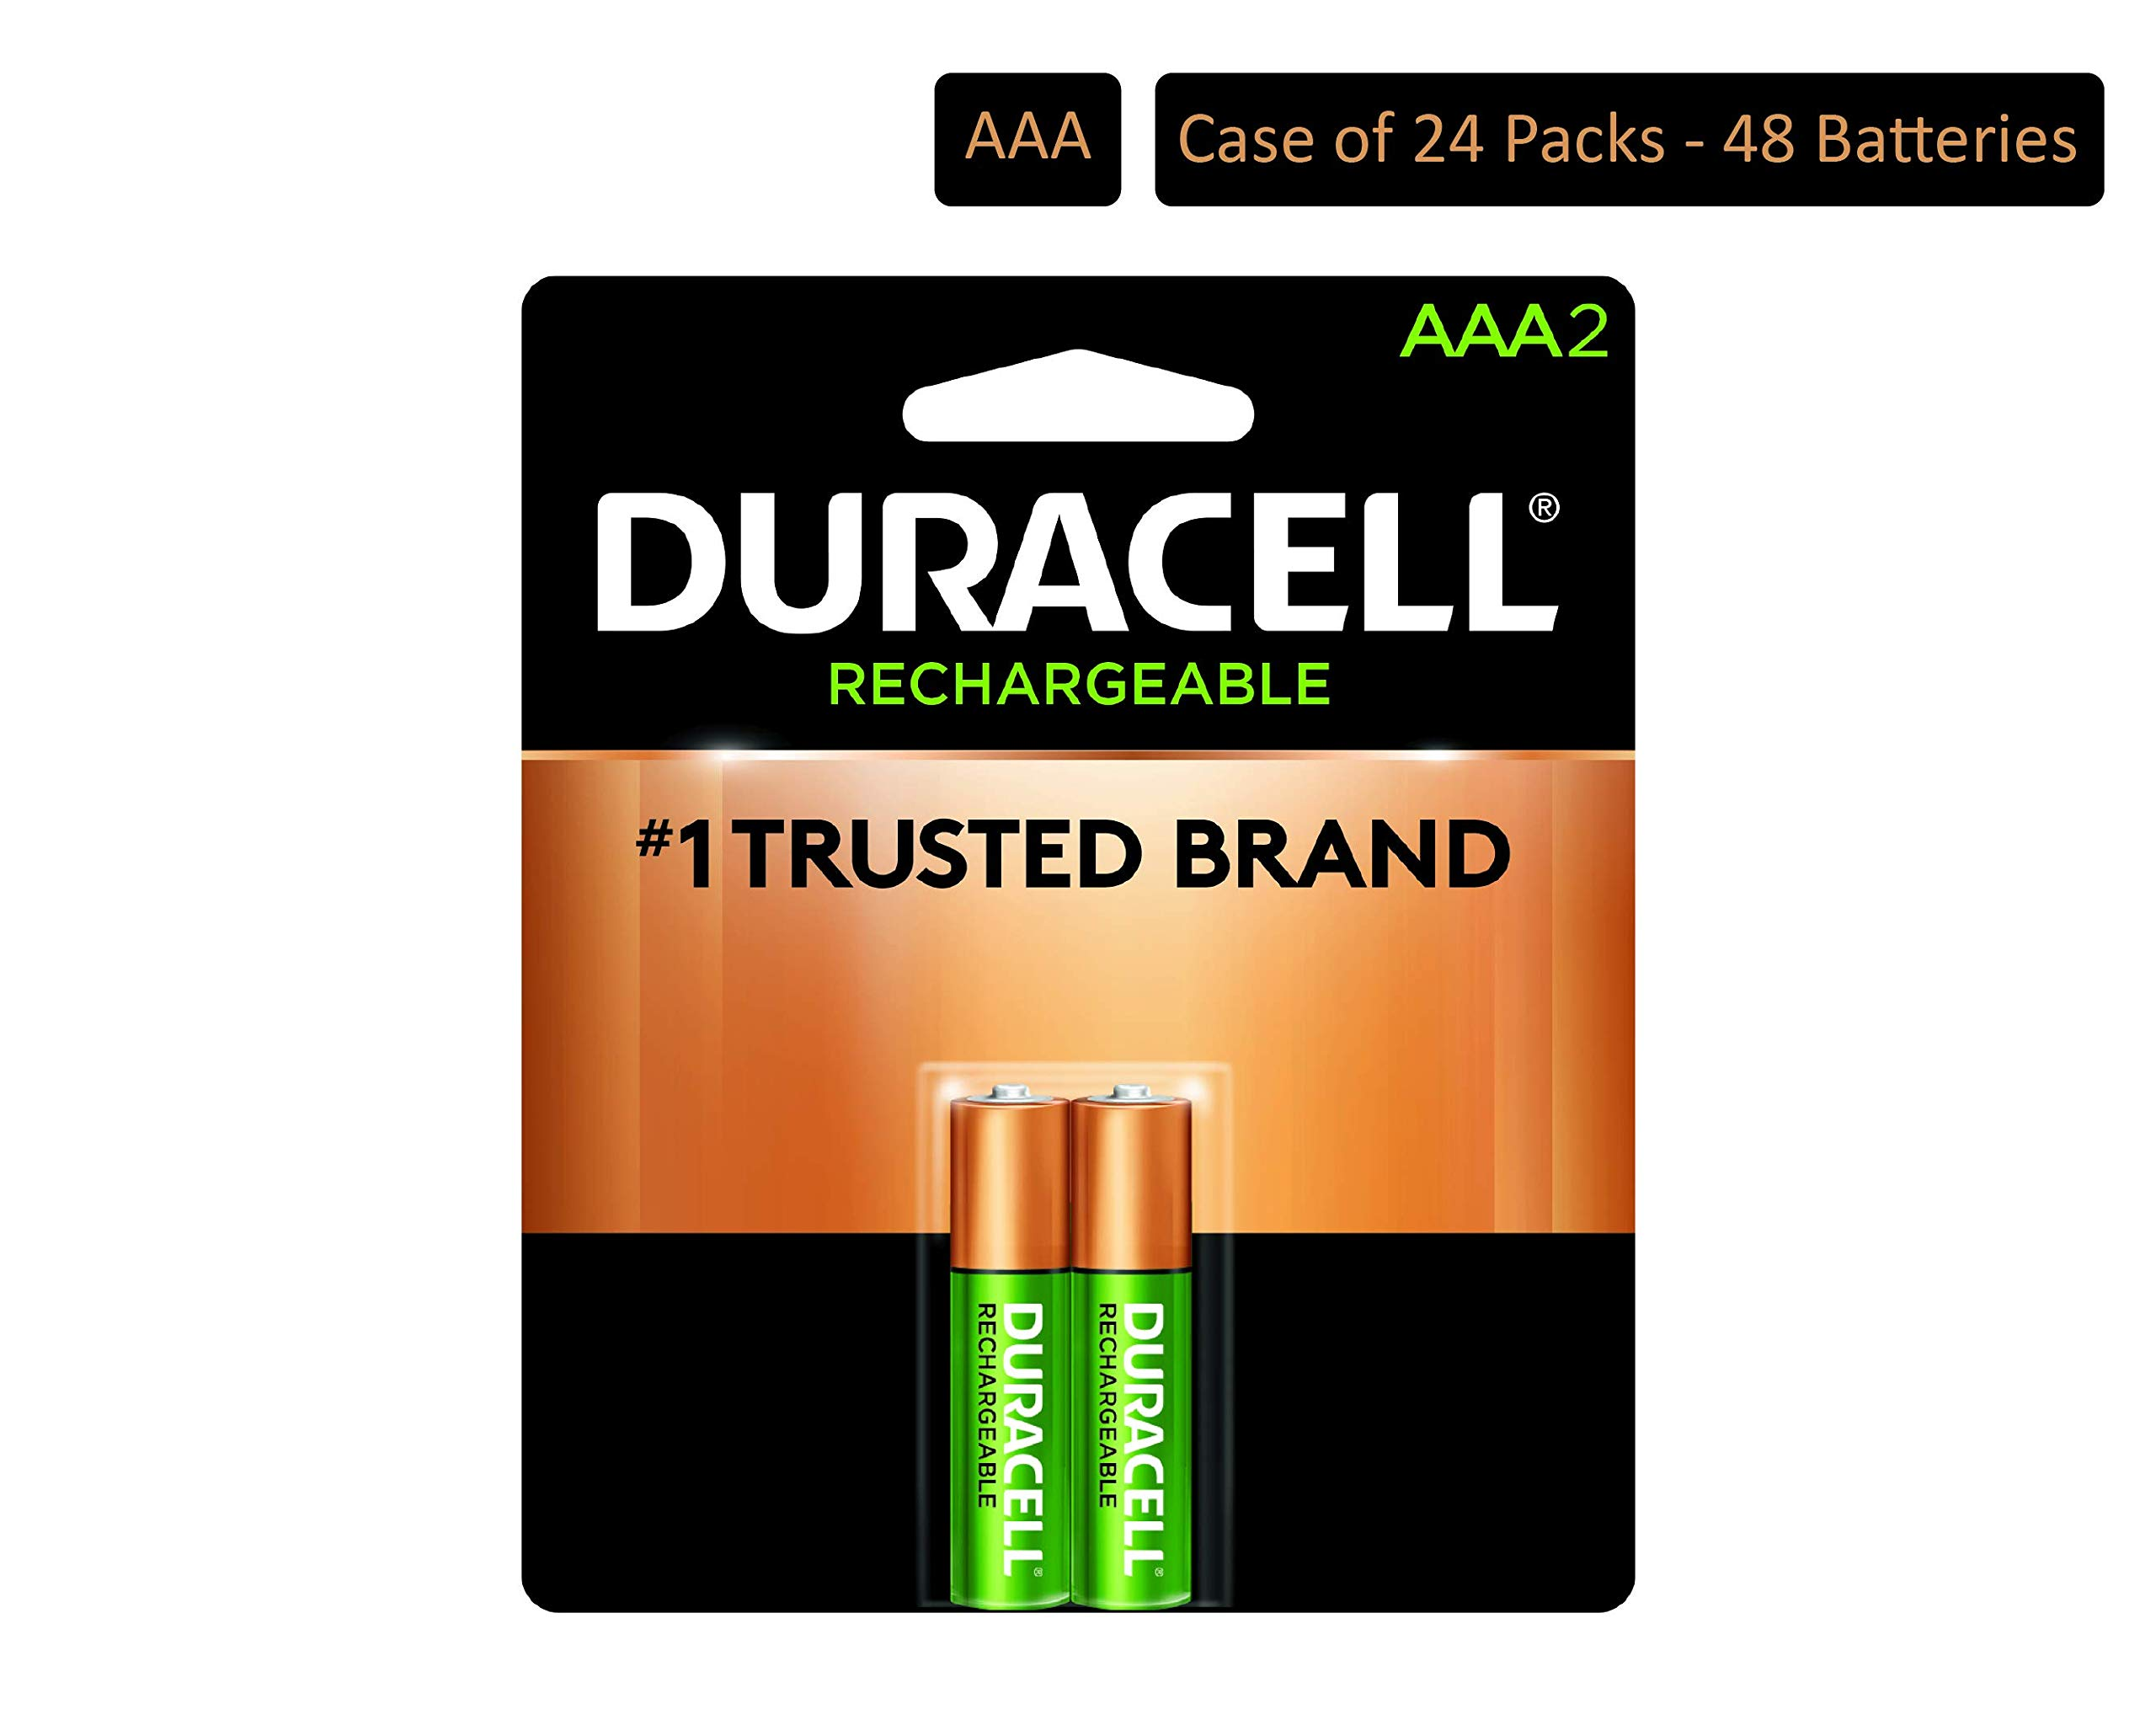 Duracell - Rechargeable AAA Batteries - long lasting, all-purpose Triple A battery for household and business - 2 count (Pack of 24) by Duracell